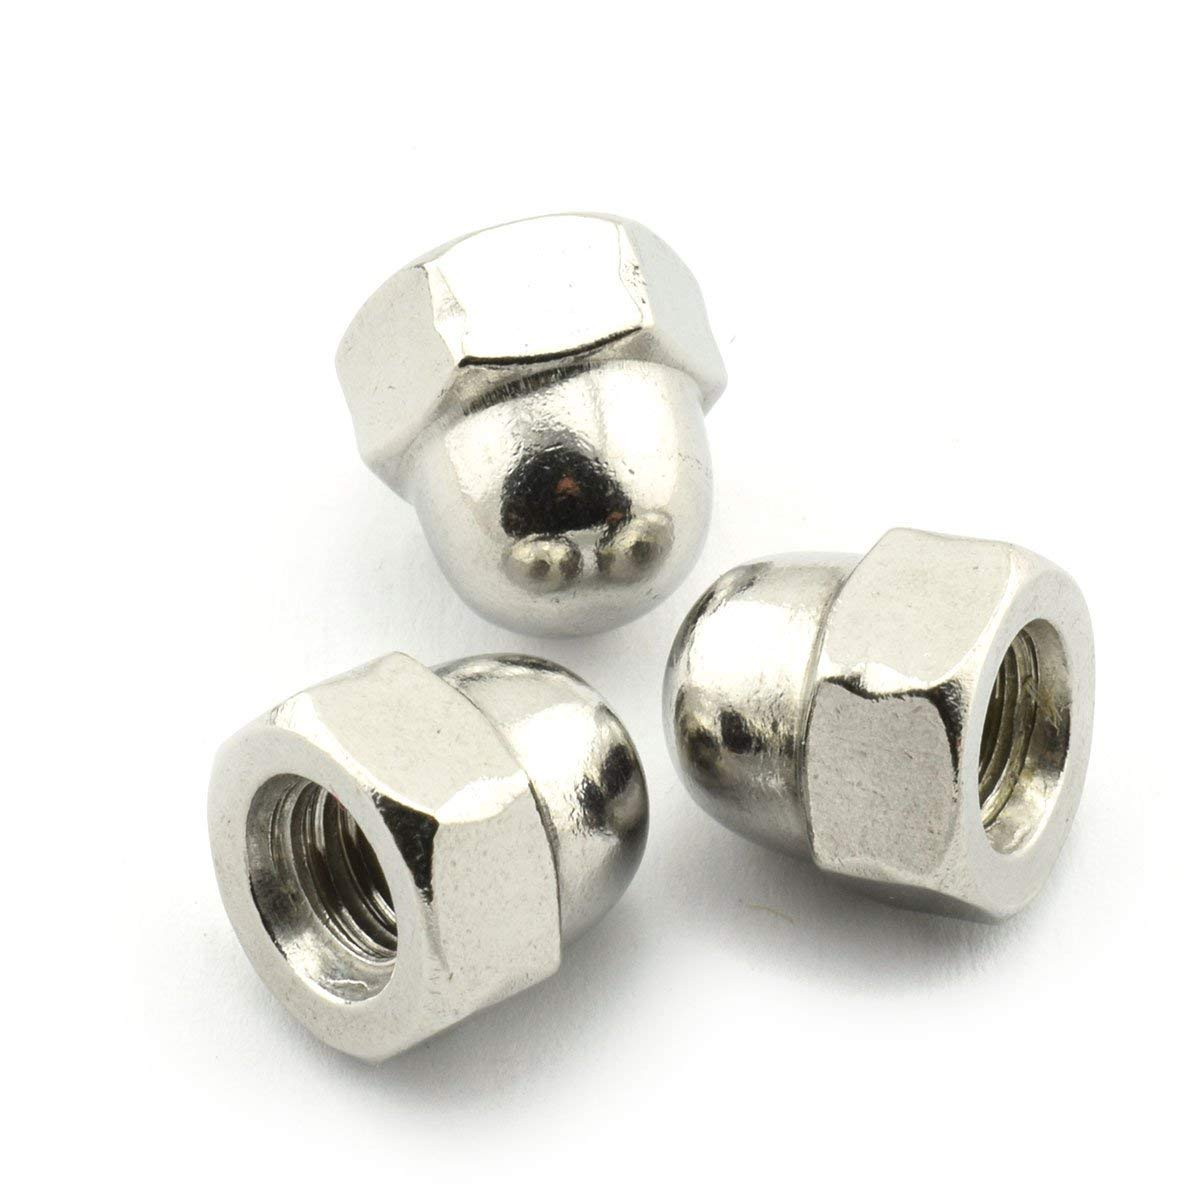 20pcs 1/4-20 Hex Acorn Nuts 304 Stainless Steel Hexagon Decorative Cap Nut Acorn Dome Head Nuts for Screws Bolts